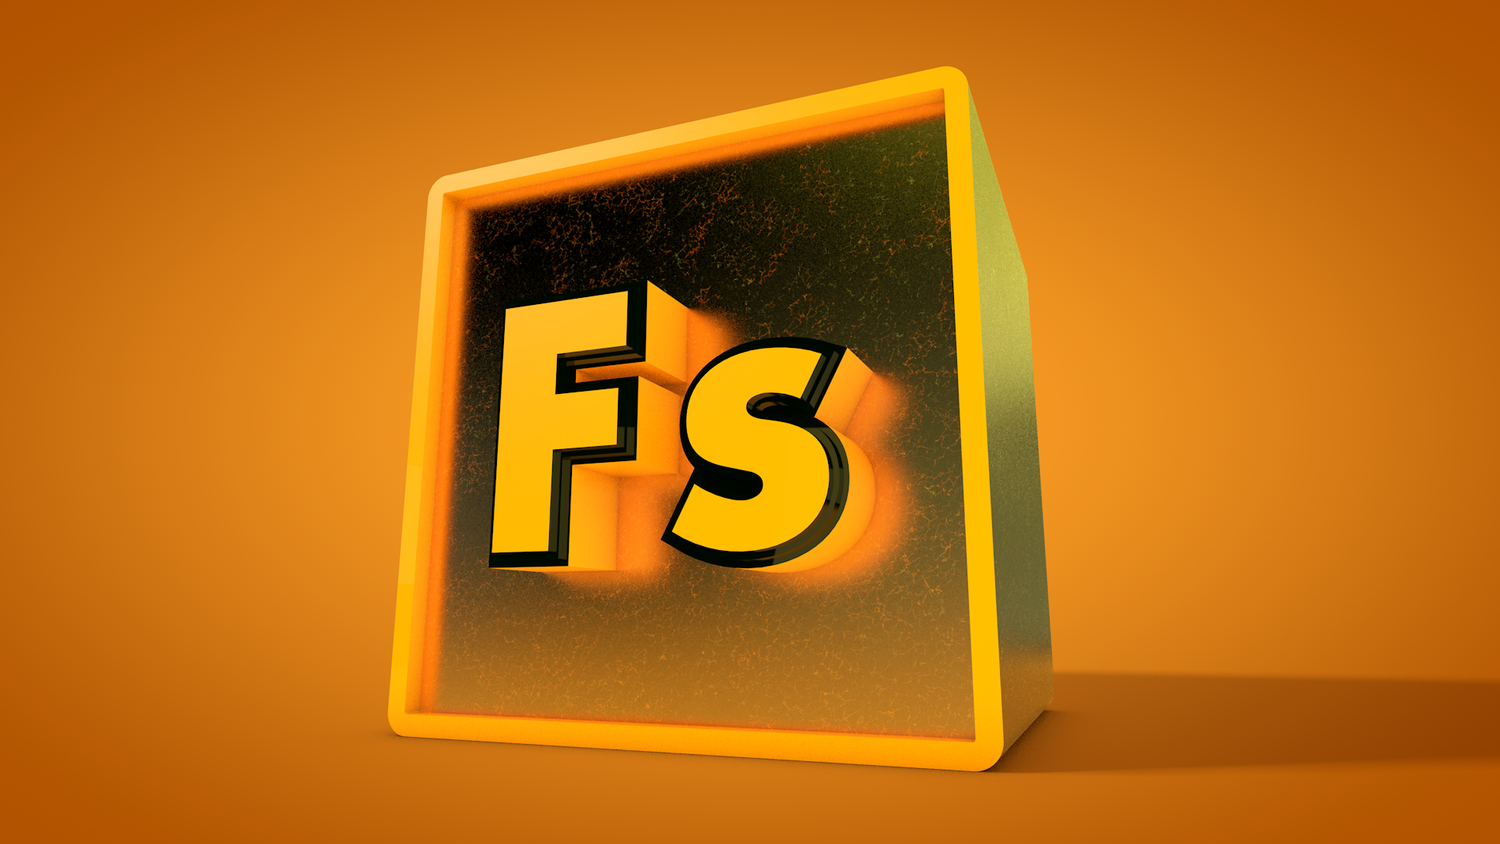 Getting Started in Adobe Fuse - How to Customize & Model a 3D